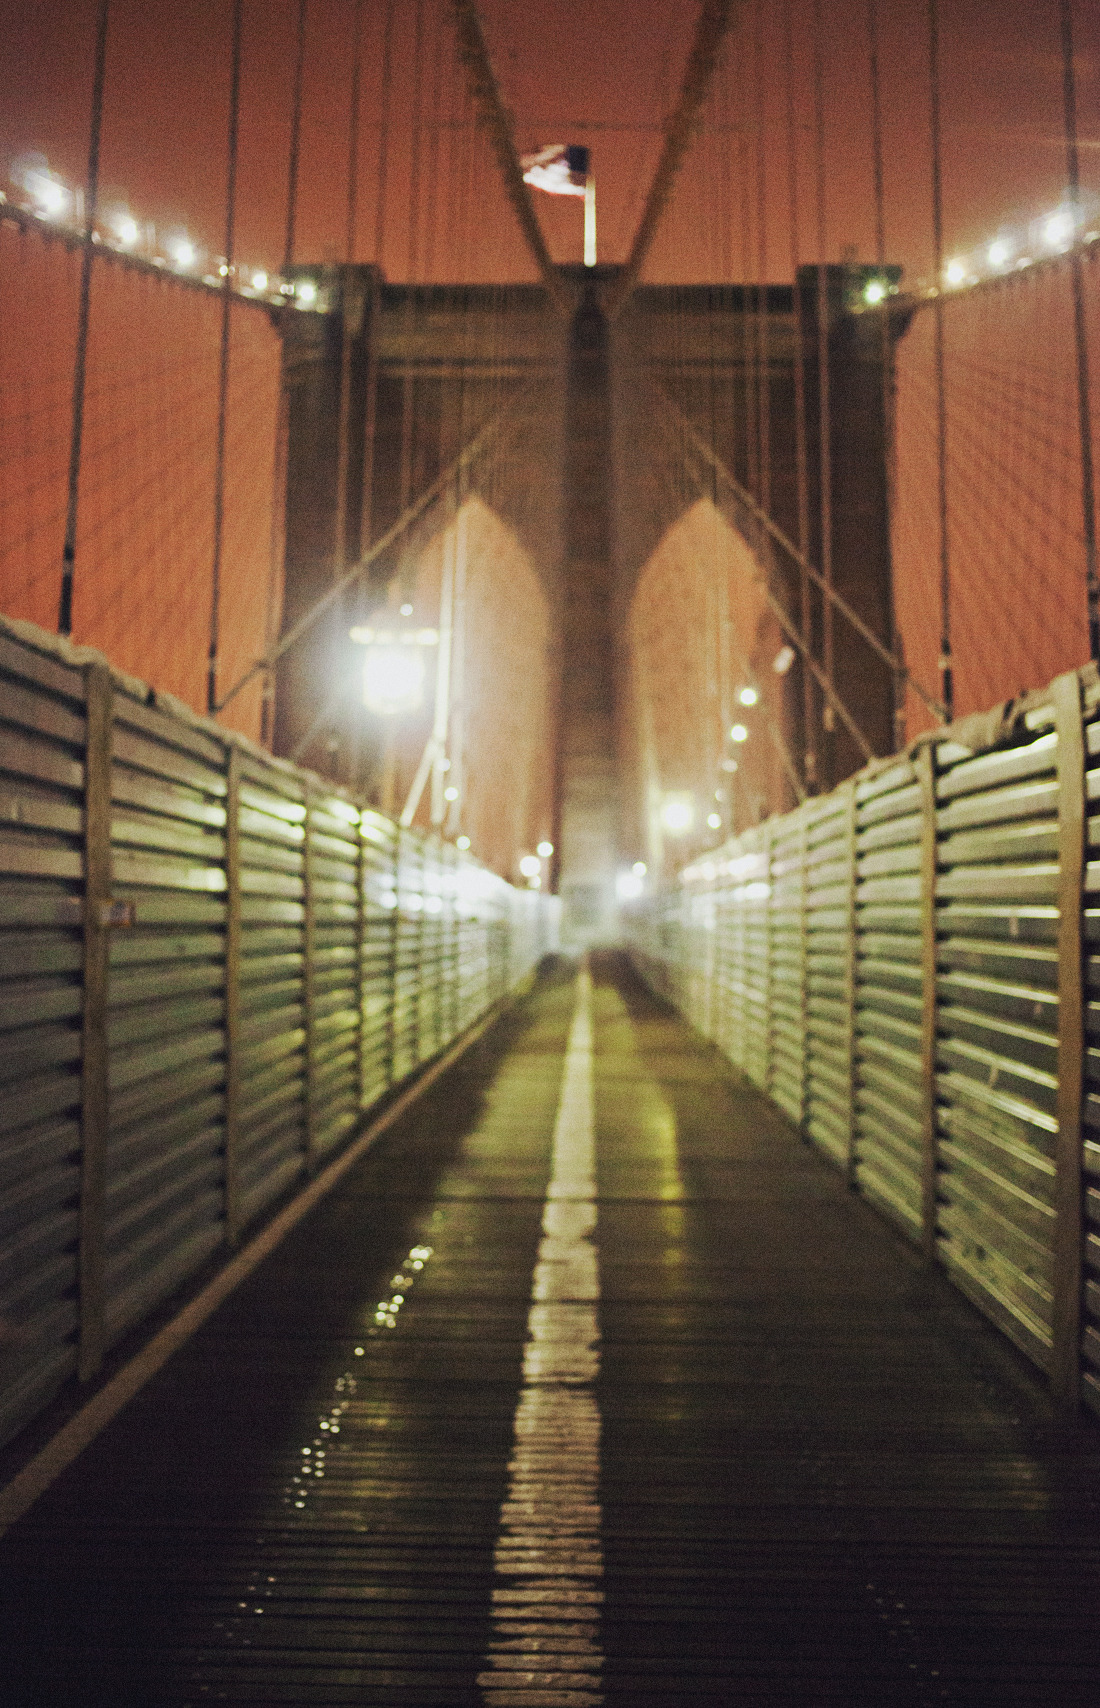 Late at Night on the Bridge. (by Moey Hoque)(Instagram)